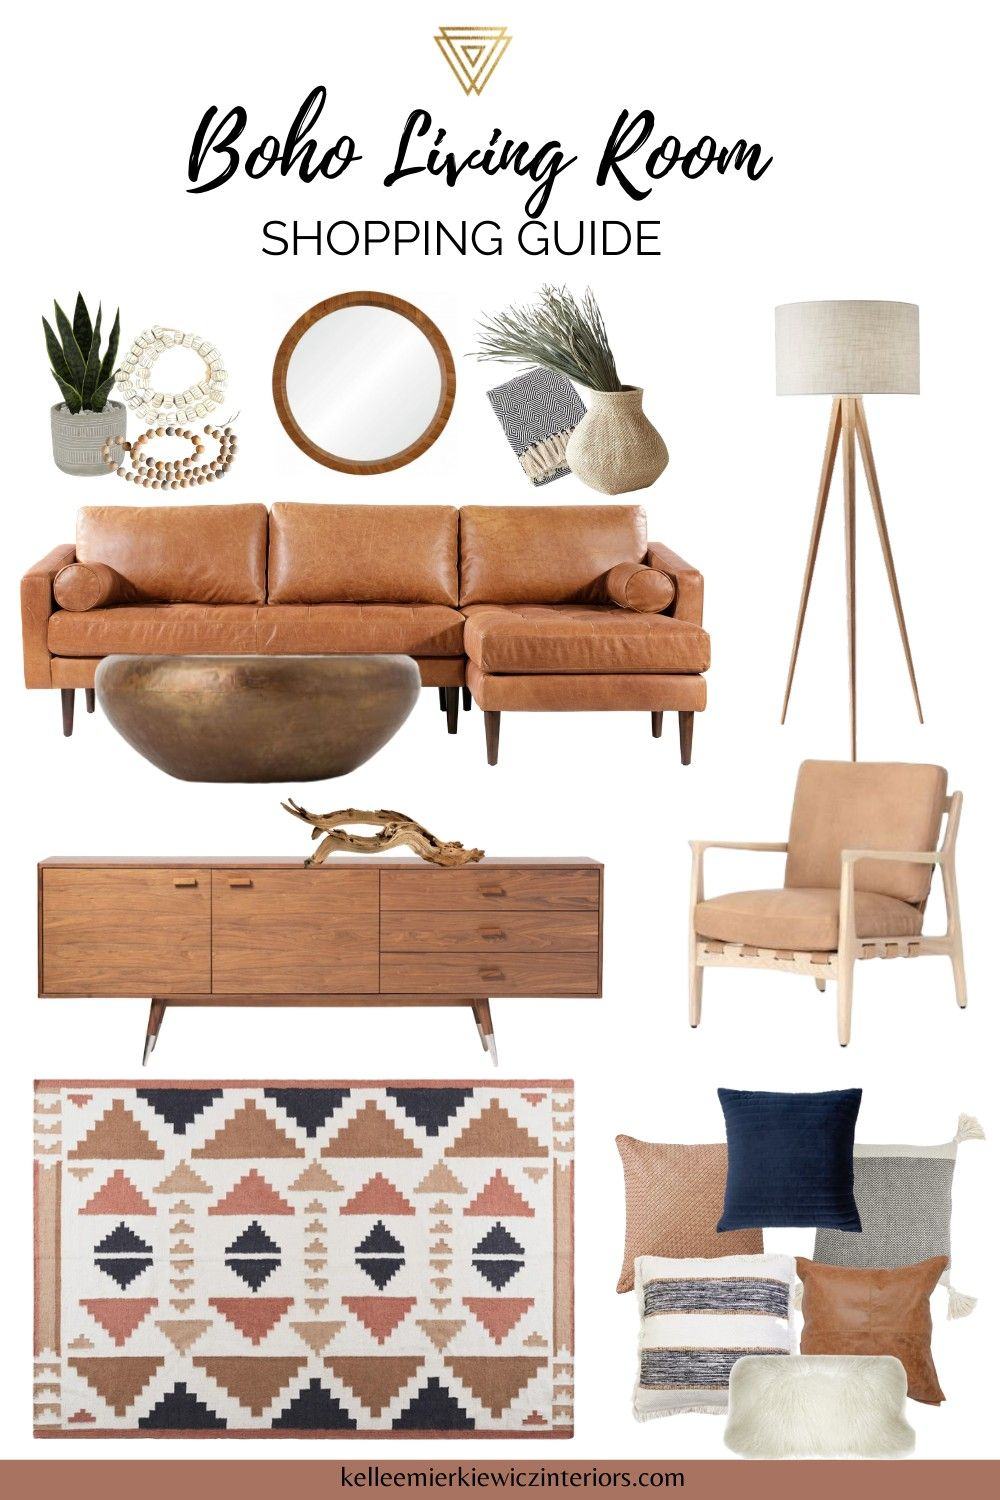 Shop The Look Boho Chic Living Room Kellee Mierkiewicz Interiors In 2020 Boho Chic Living Room Chic Living Room Home Decor #shop #this #look #living #room